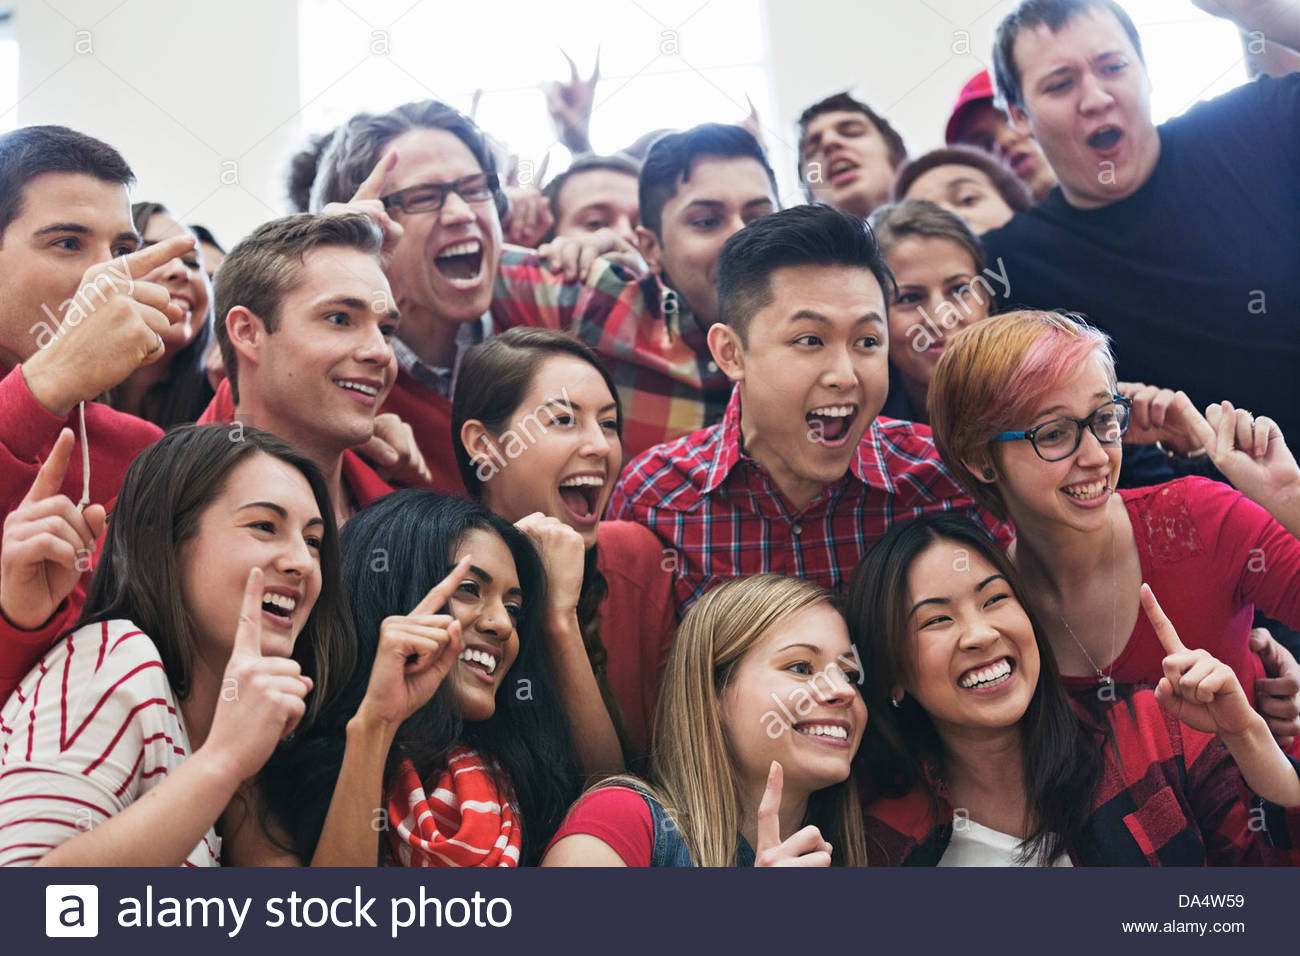 Large group of students posing for picture at college sporting event - Stock Image